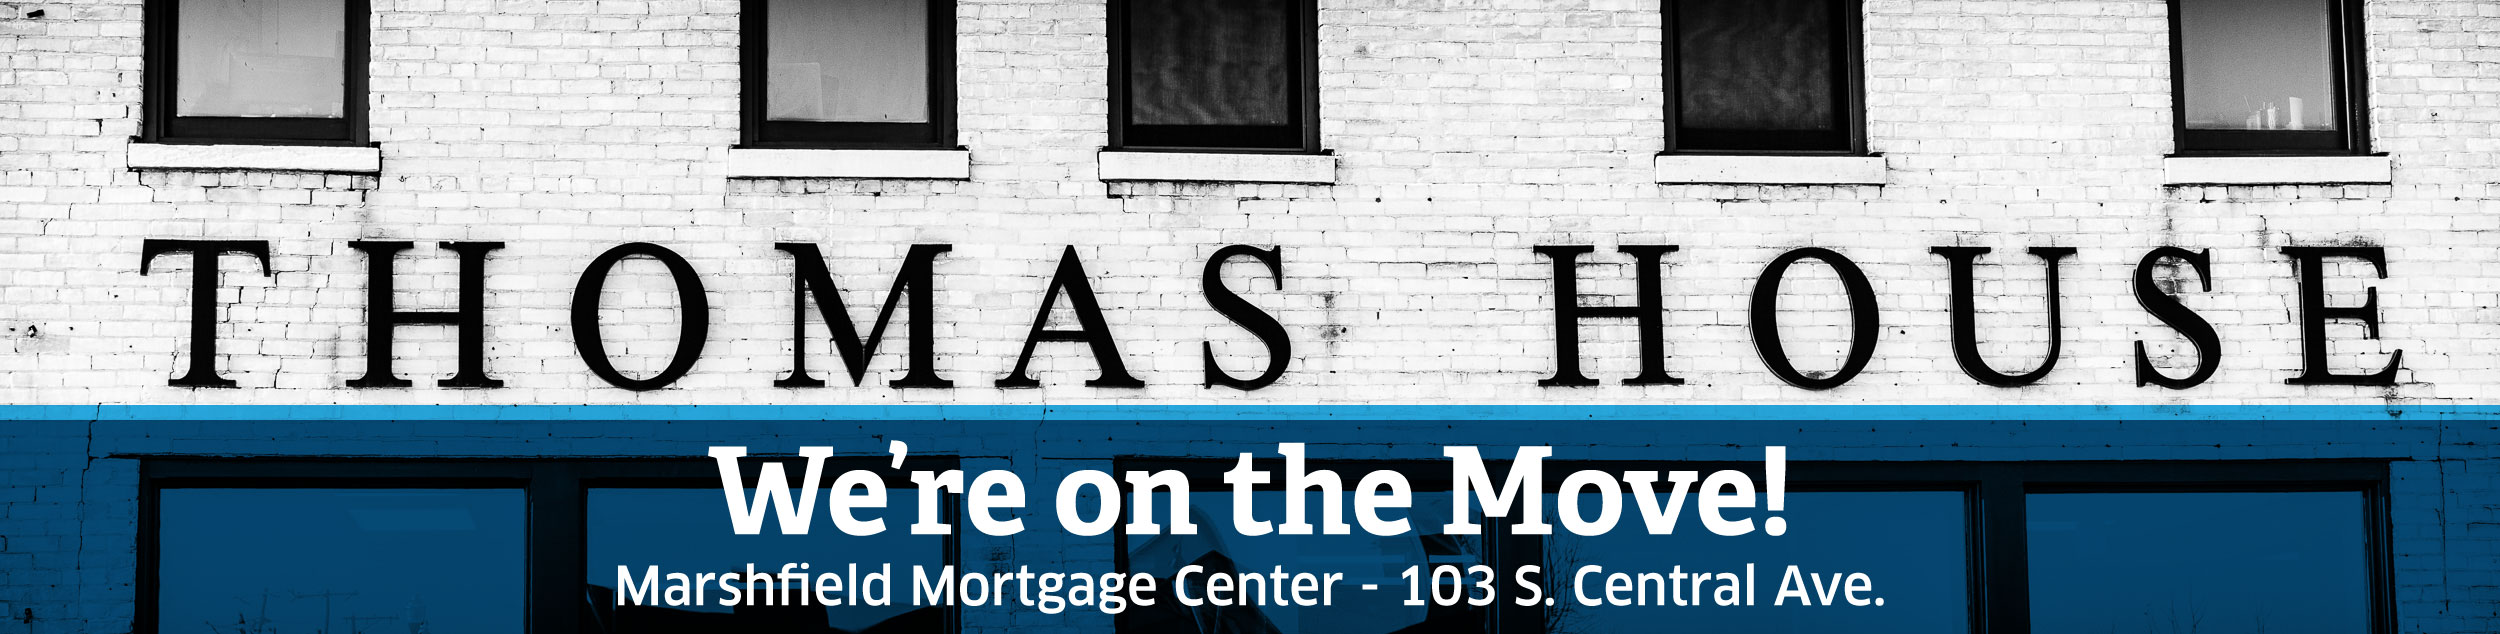 Marshfield Mortgage Center Moving